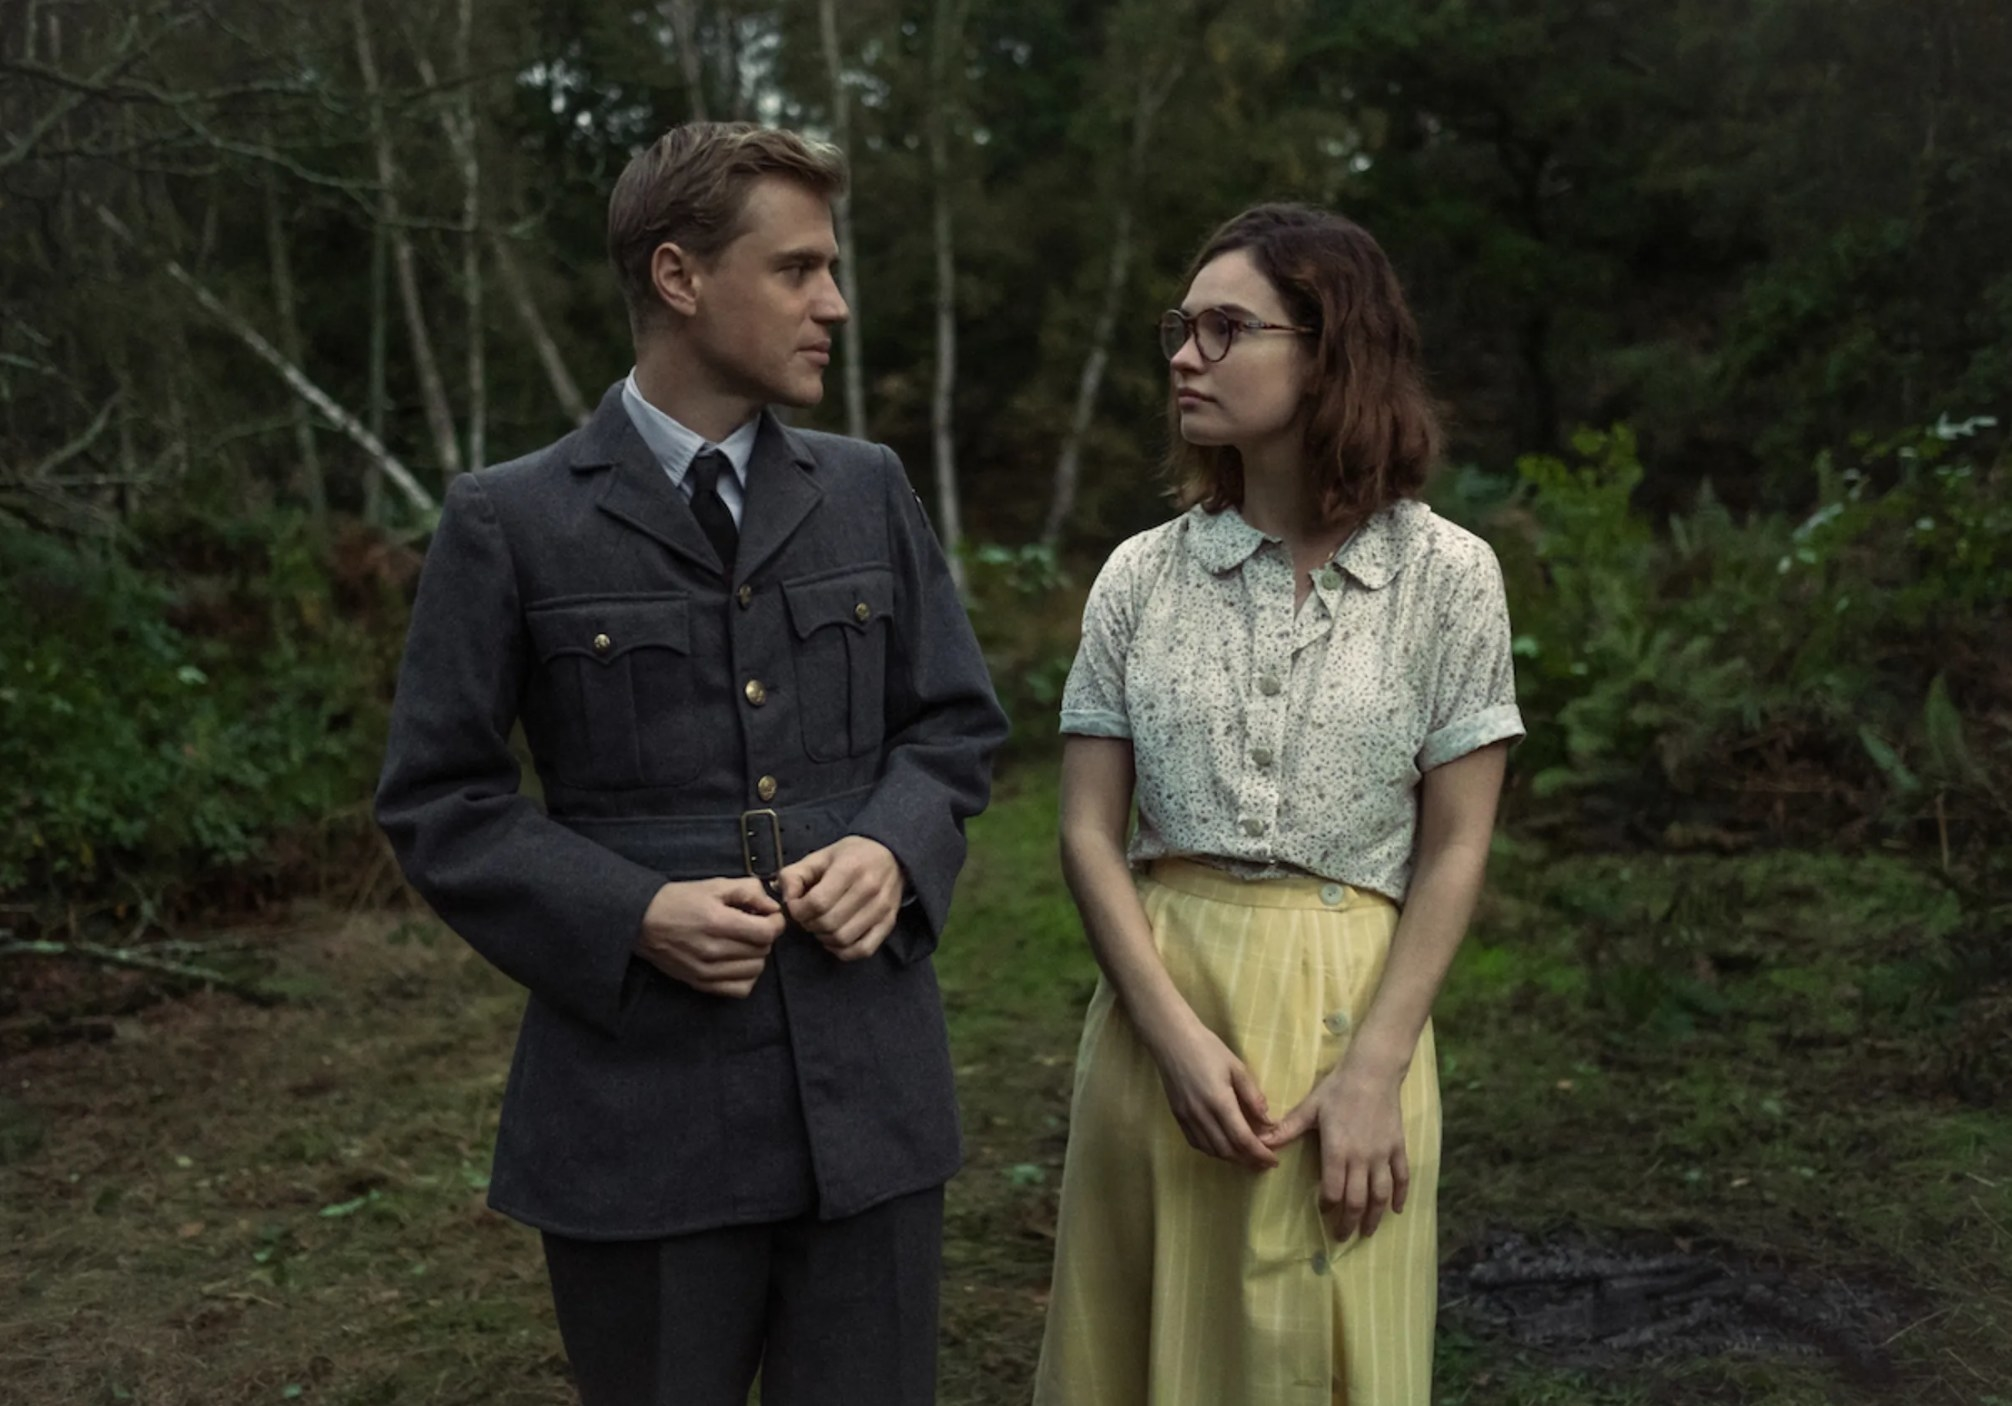 Still from The Dig: Peggy and Rory walking in a forest